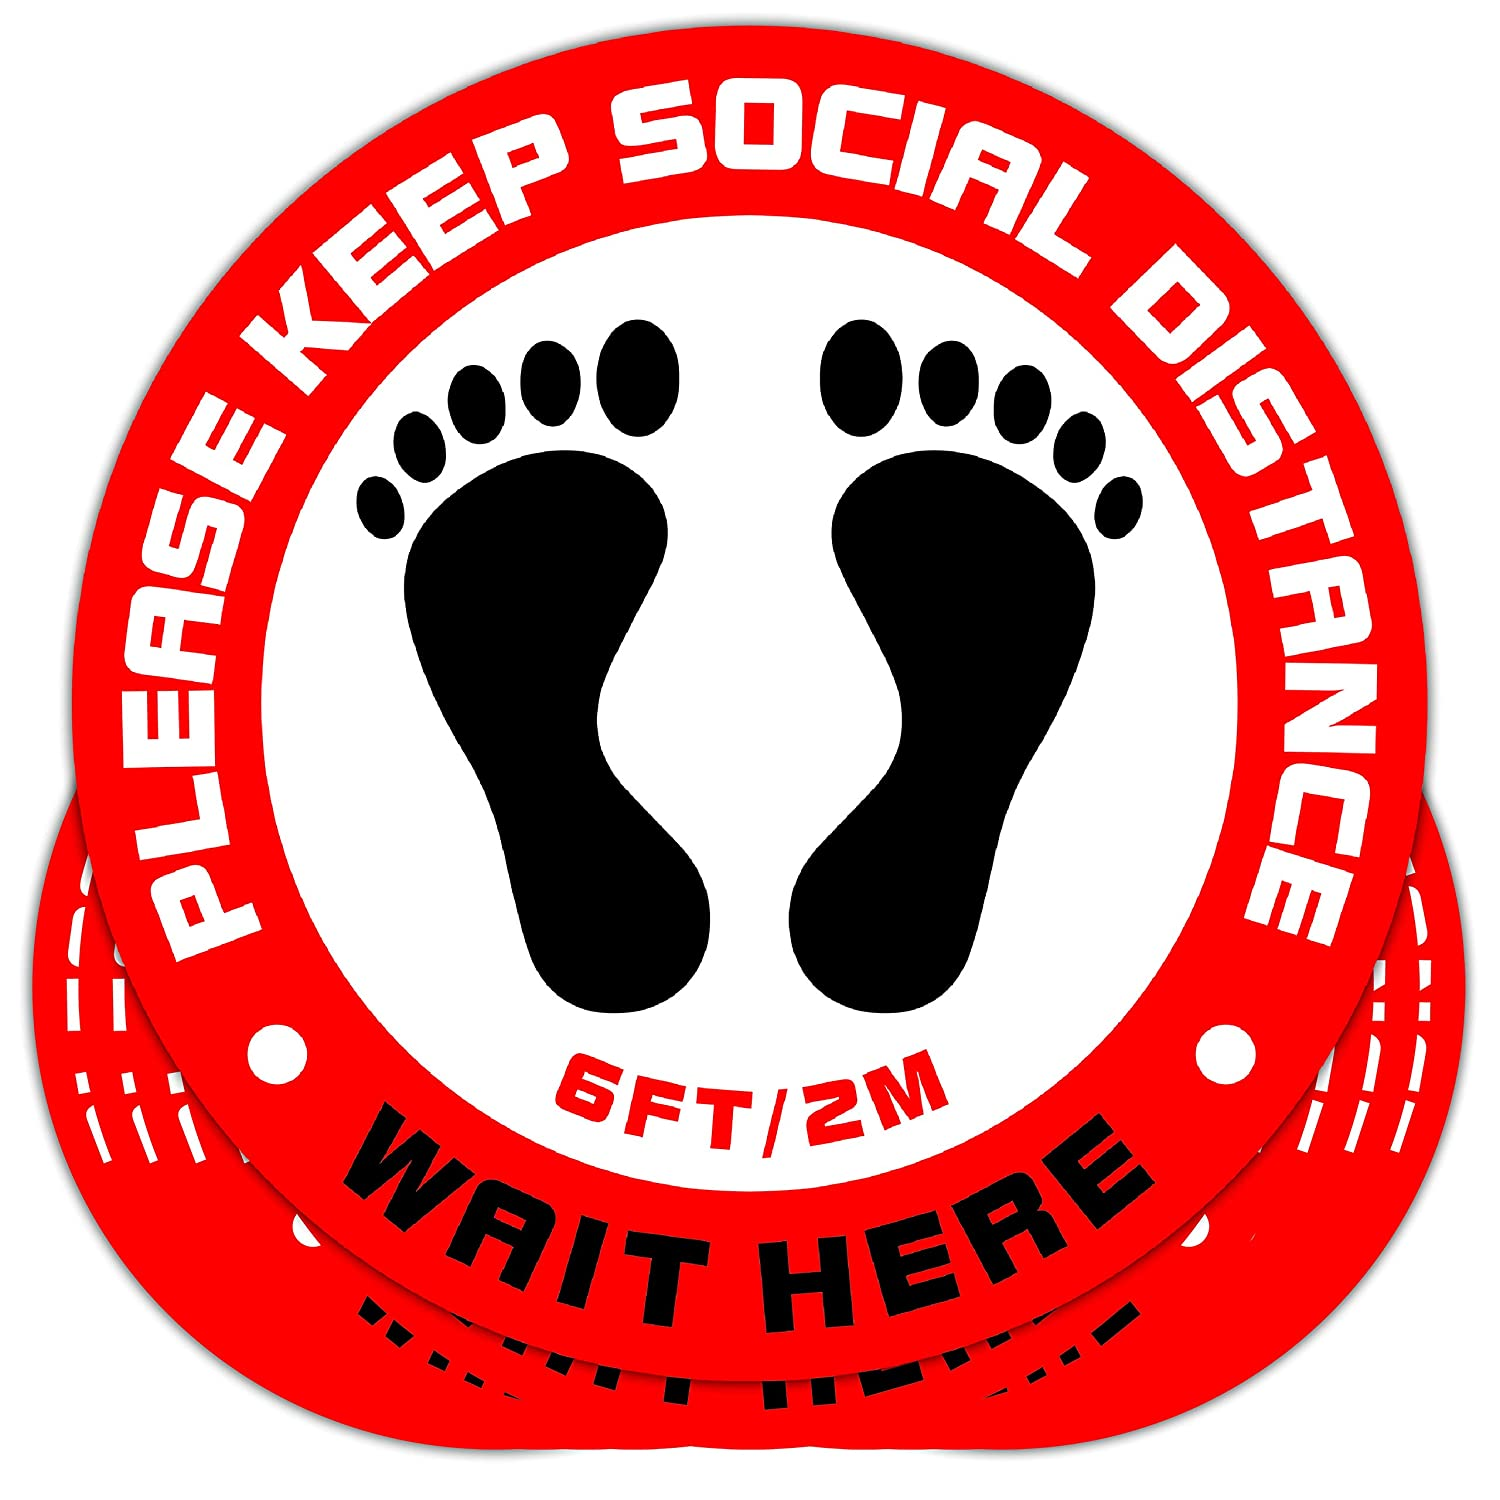 Acessorz Social Distancing Floor Decal Sticker Sign - Stop 6 Feet Apart Stand Please Wait Here Sign Safety Social Distance for Grocery Stores, Dr. Offices, Hospitals - 11 Inch Round (10 Pack)